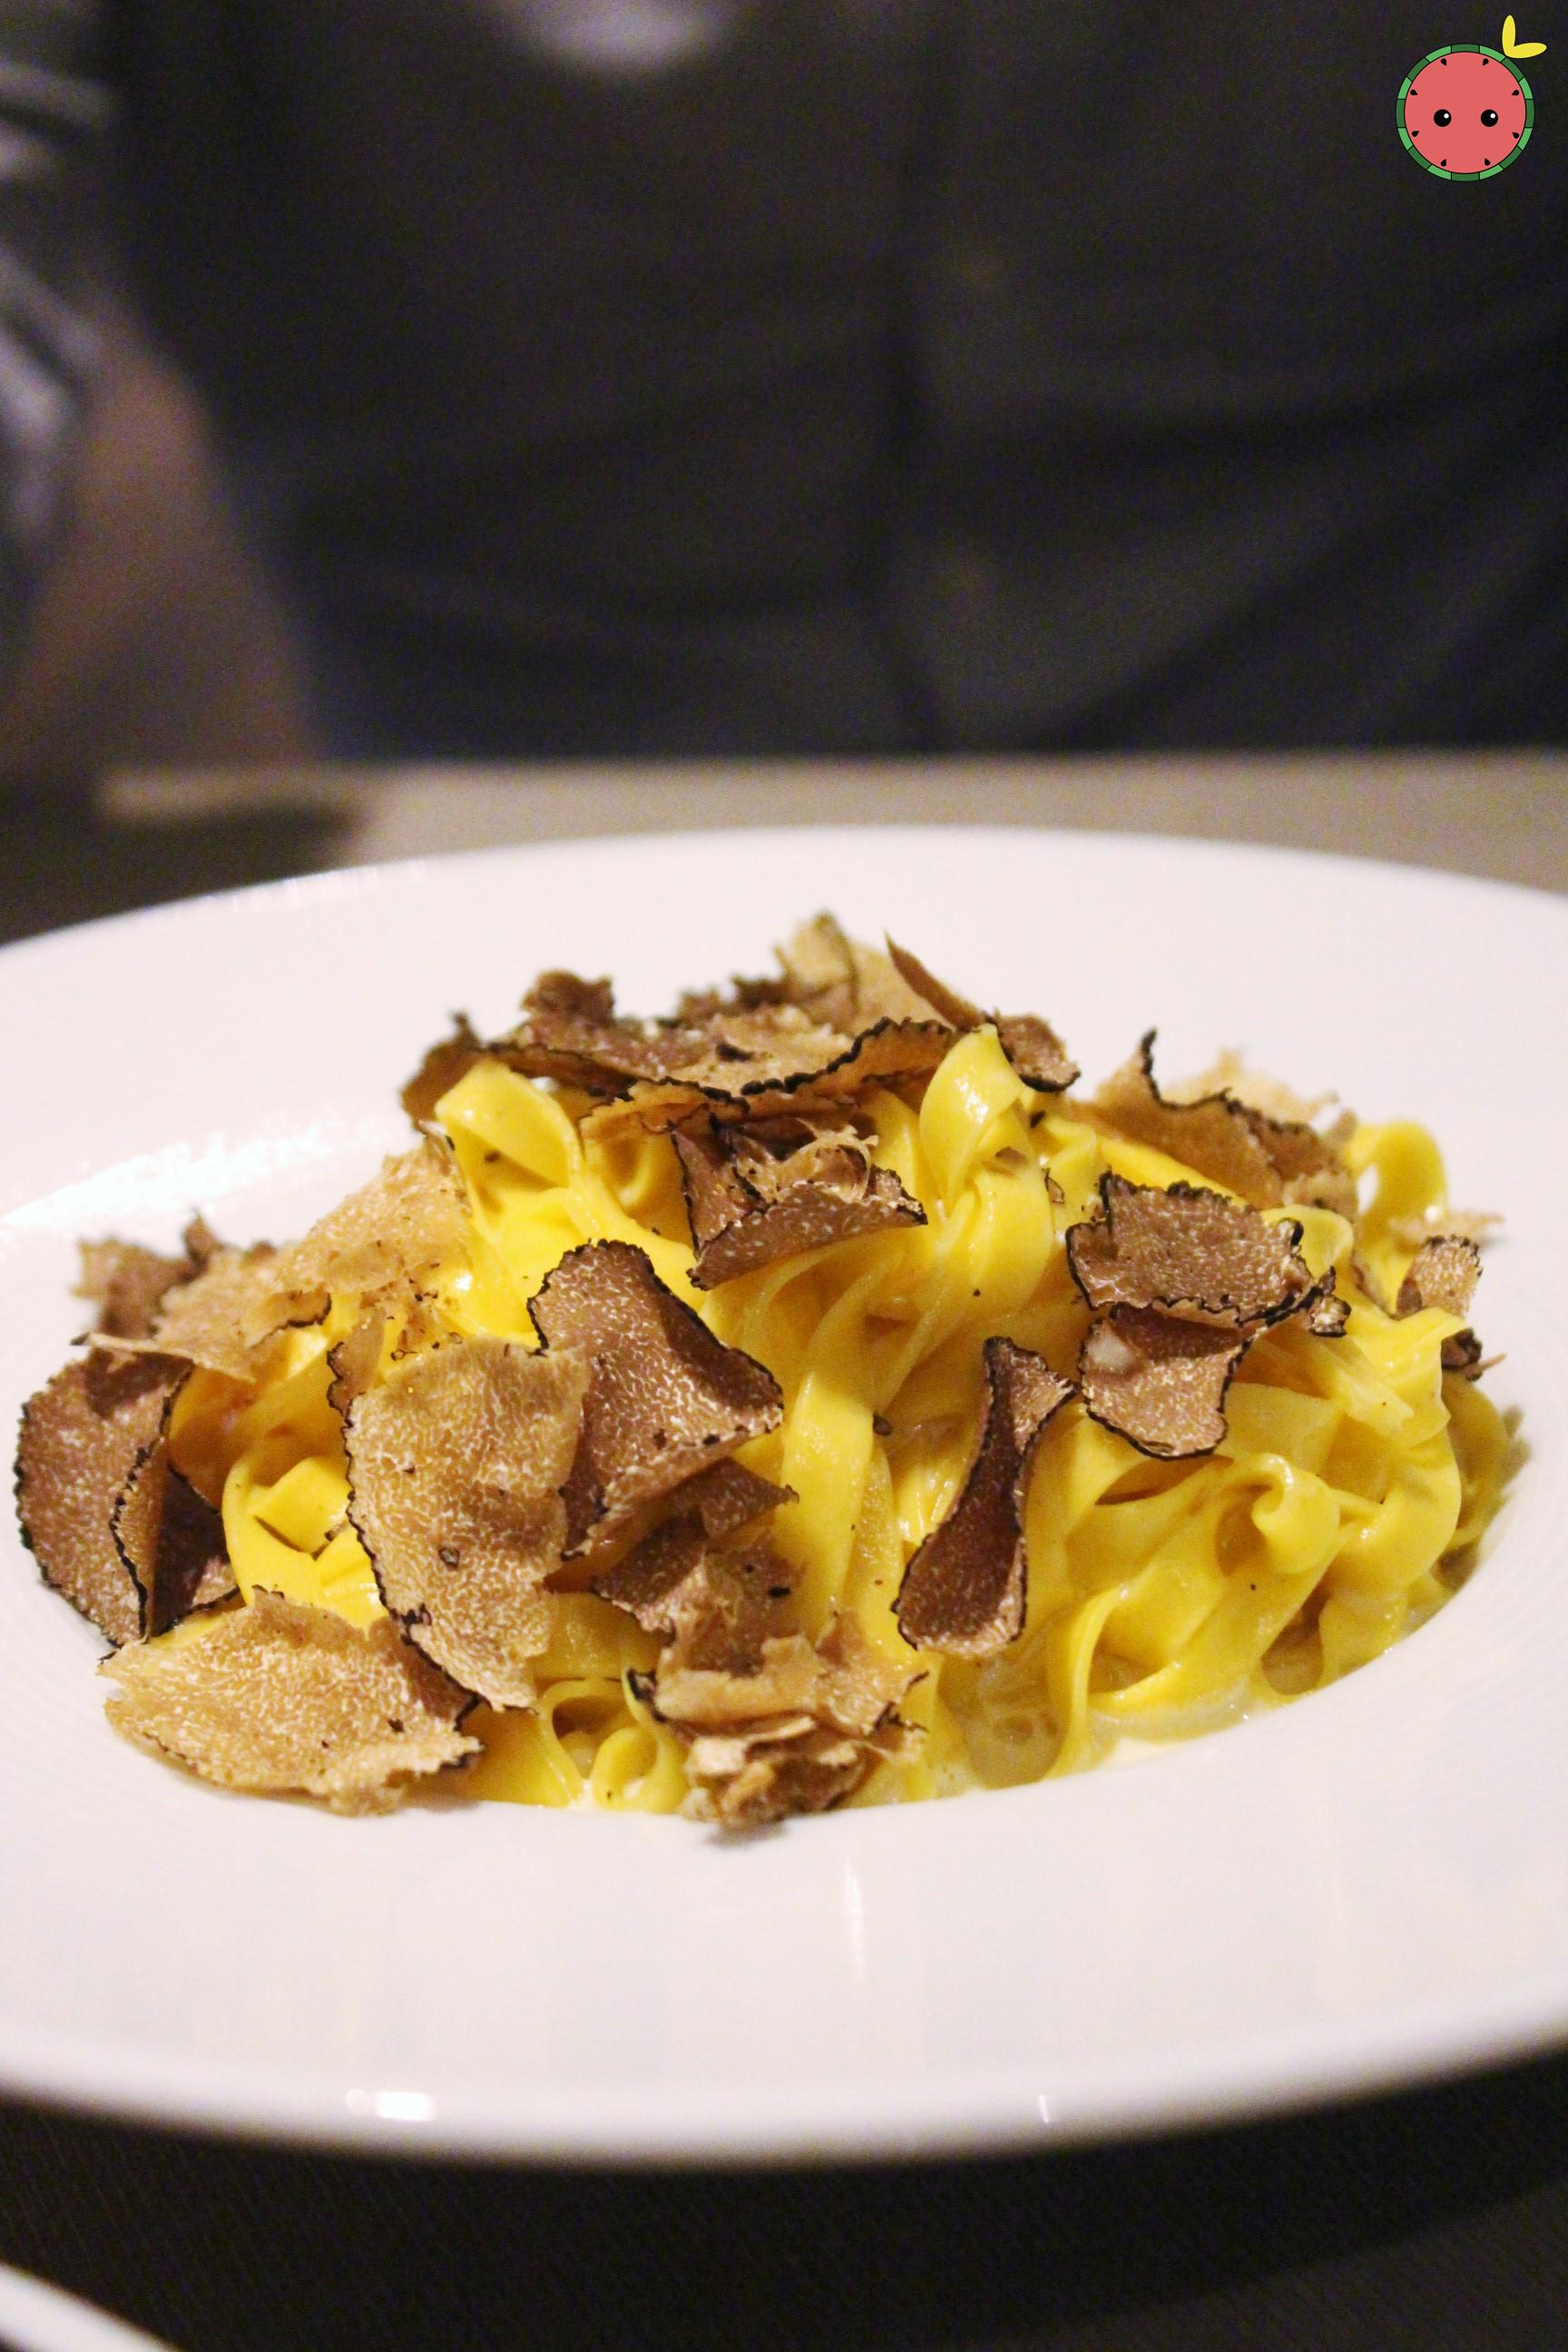 Tagliatelles with Truffle and Truffled Cream